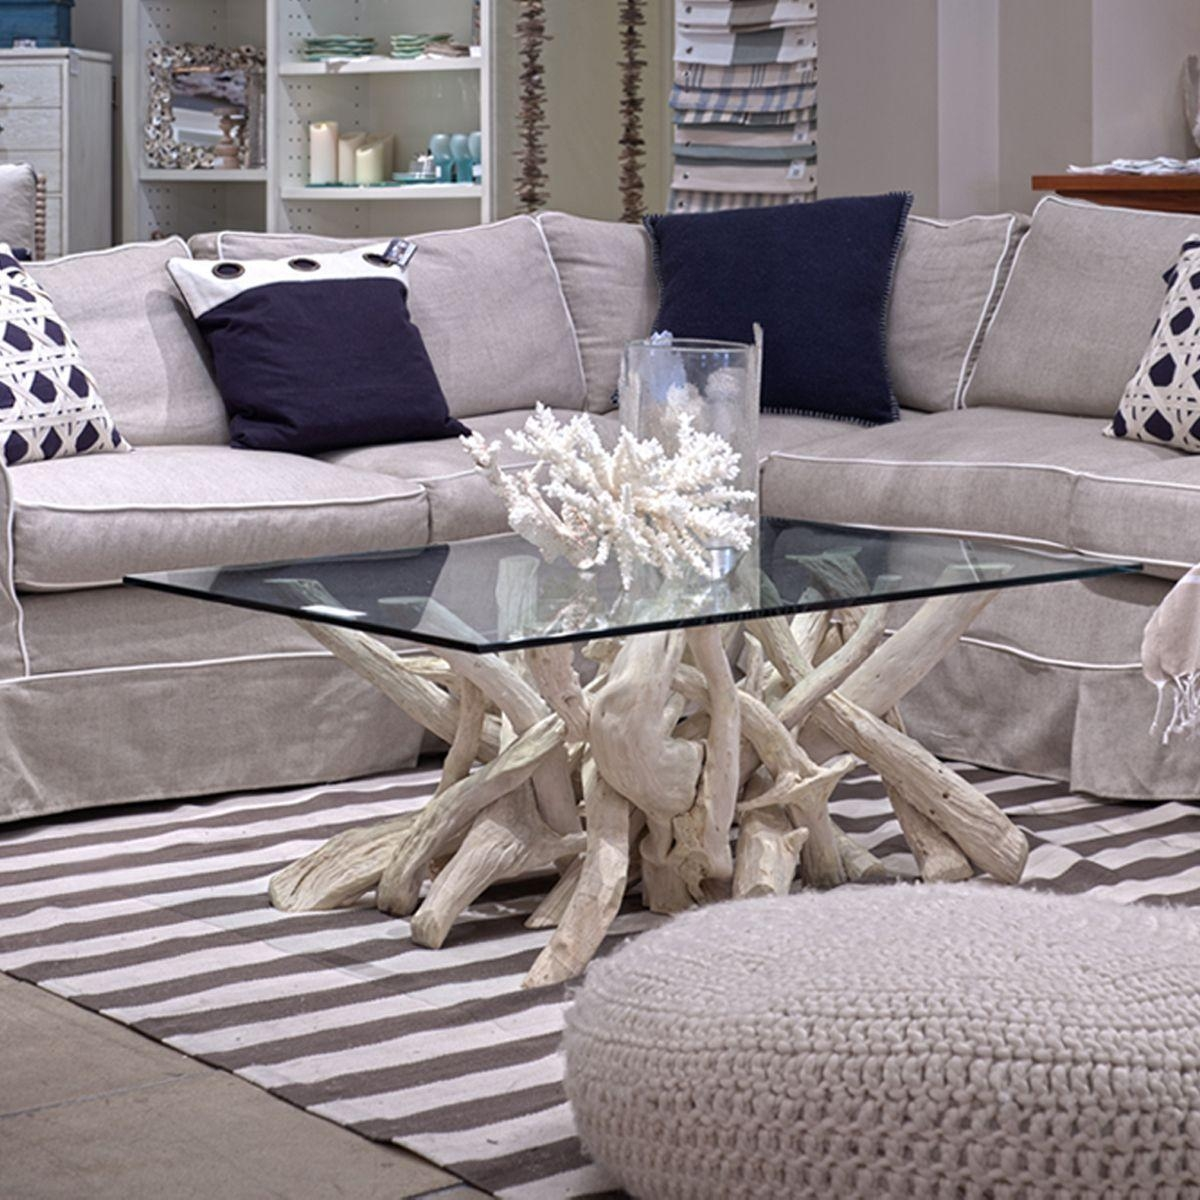 Driftwood Sofa Table | Decorative Table Decoration Regarding Crate And Barrel Sofa Tables (Image 19 of 20)